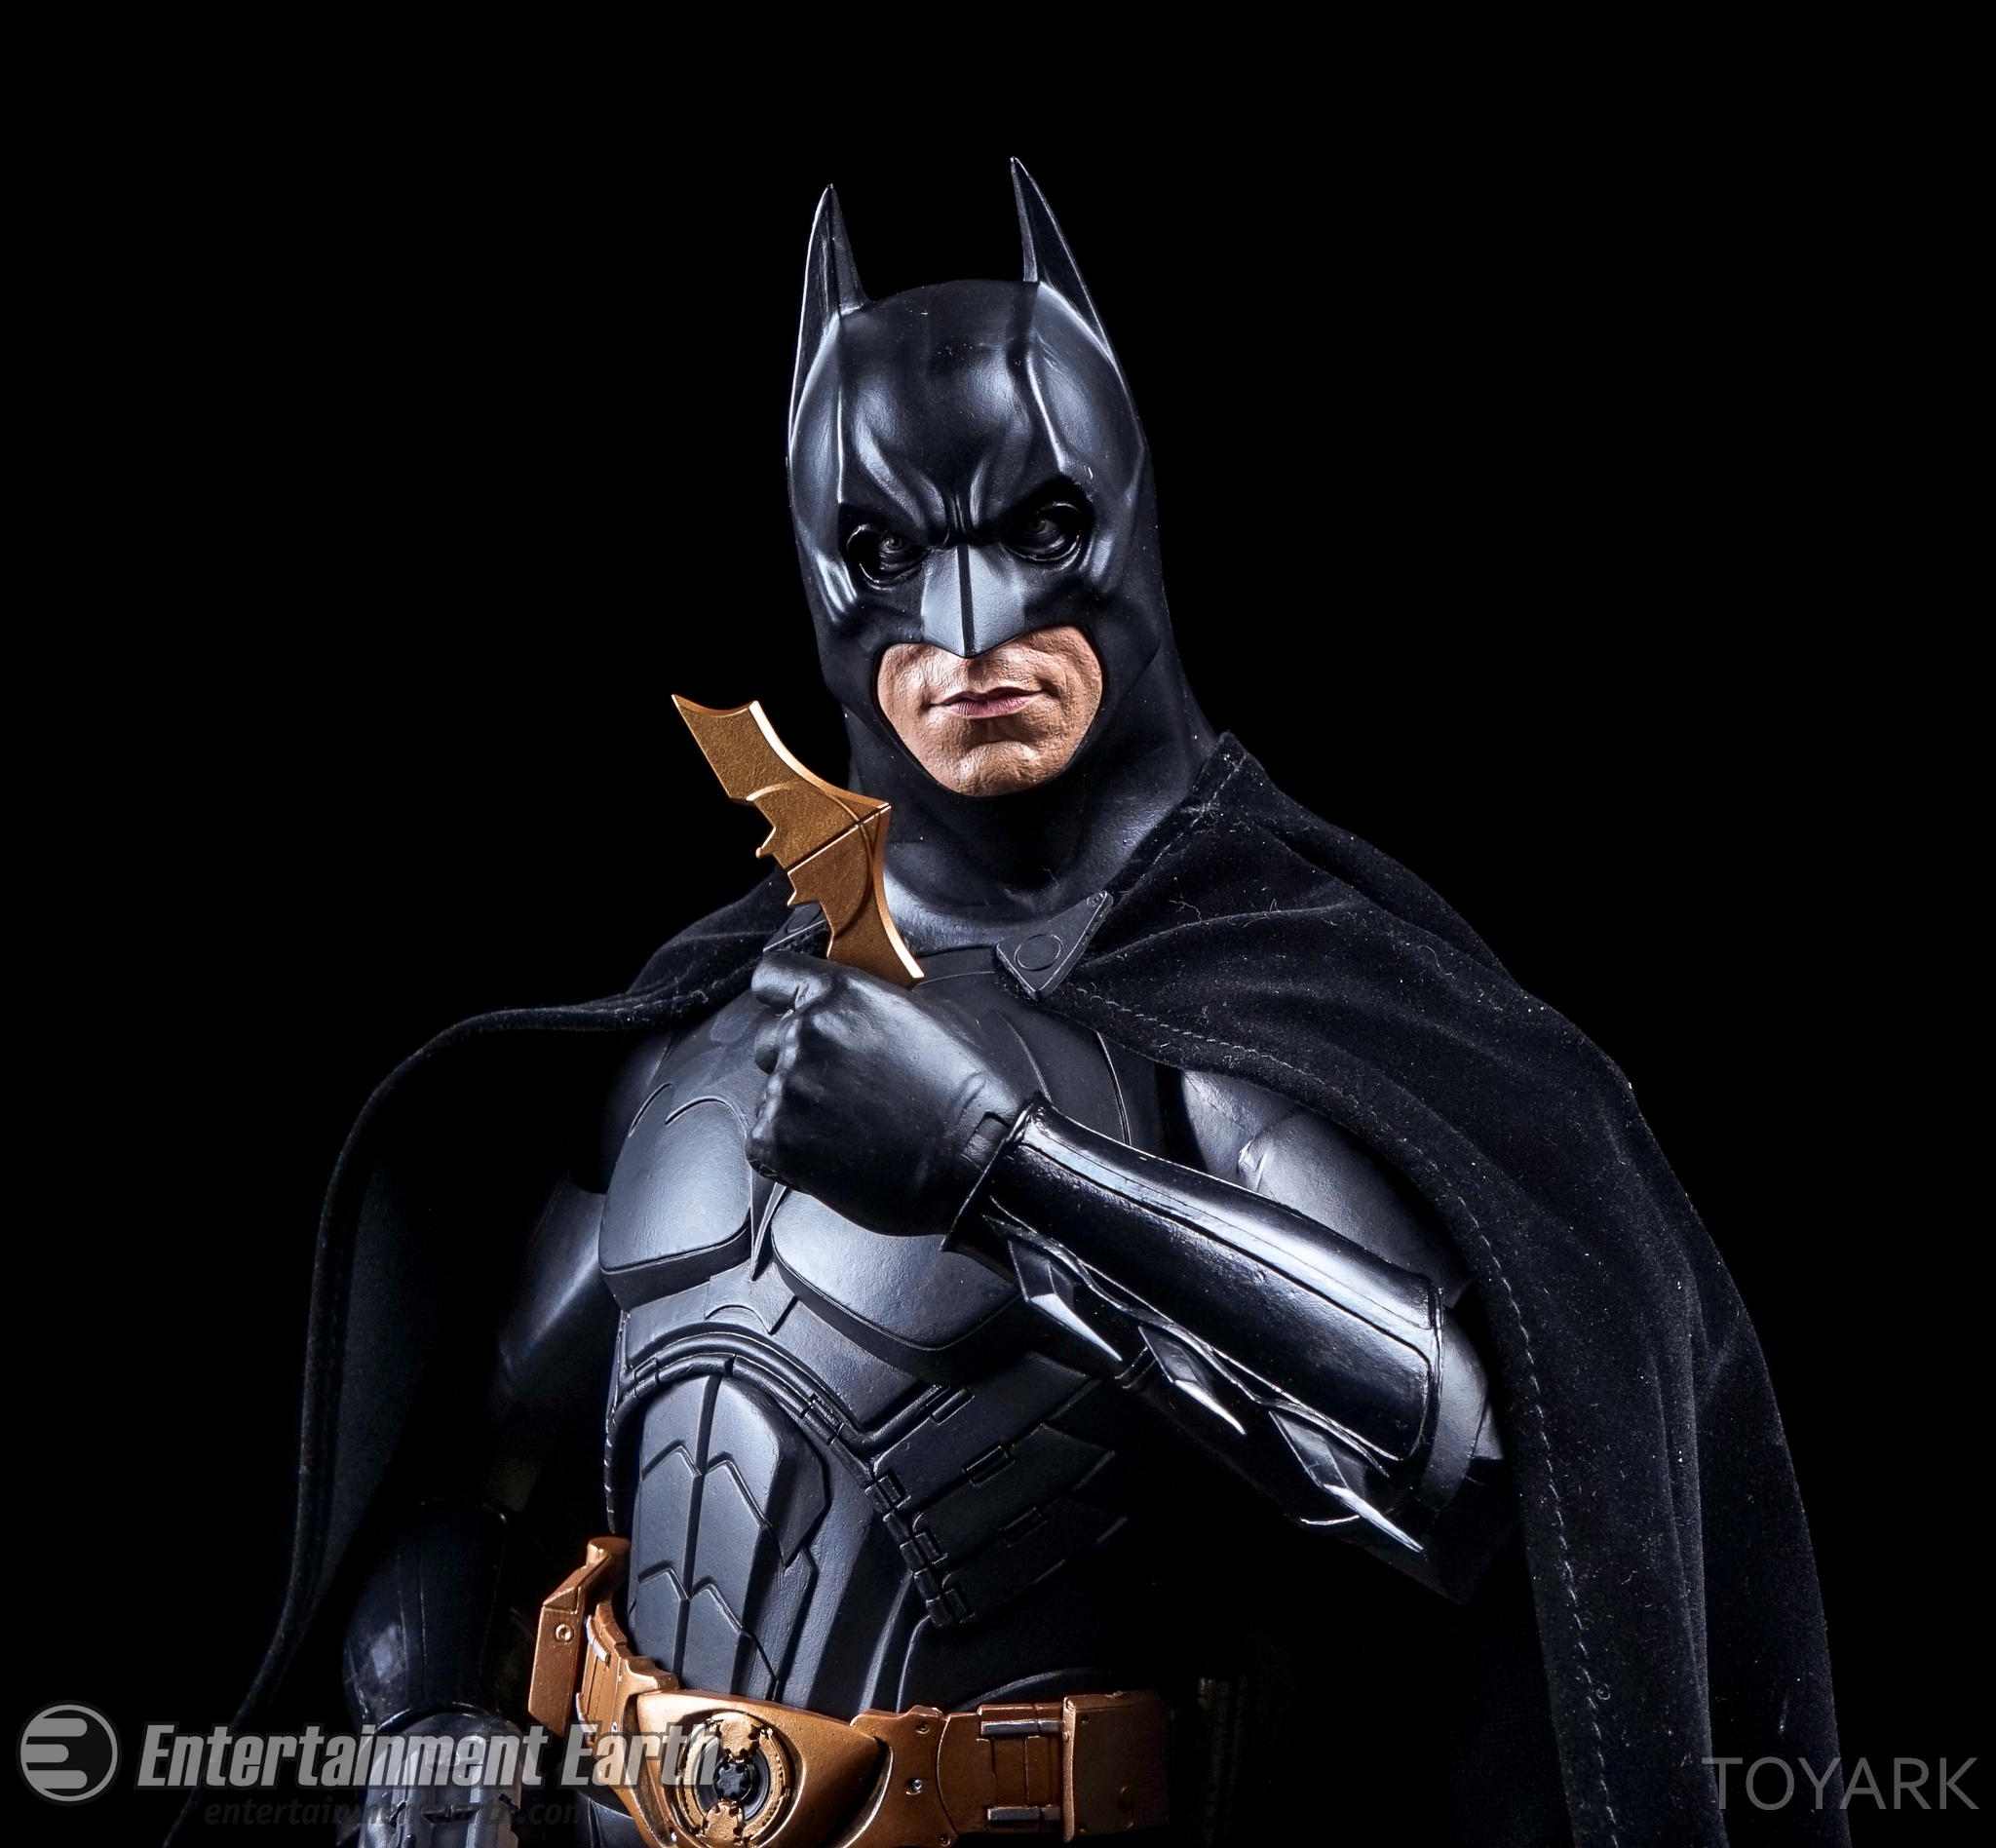 http://news.toyark.com/wp-content/uploads/sites/4/2016/07/NECA-Batman-Begins-035.jpg